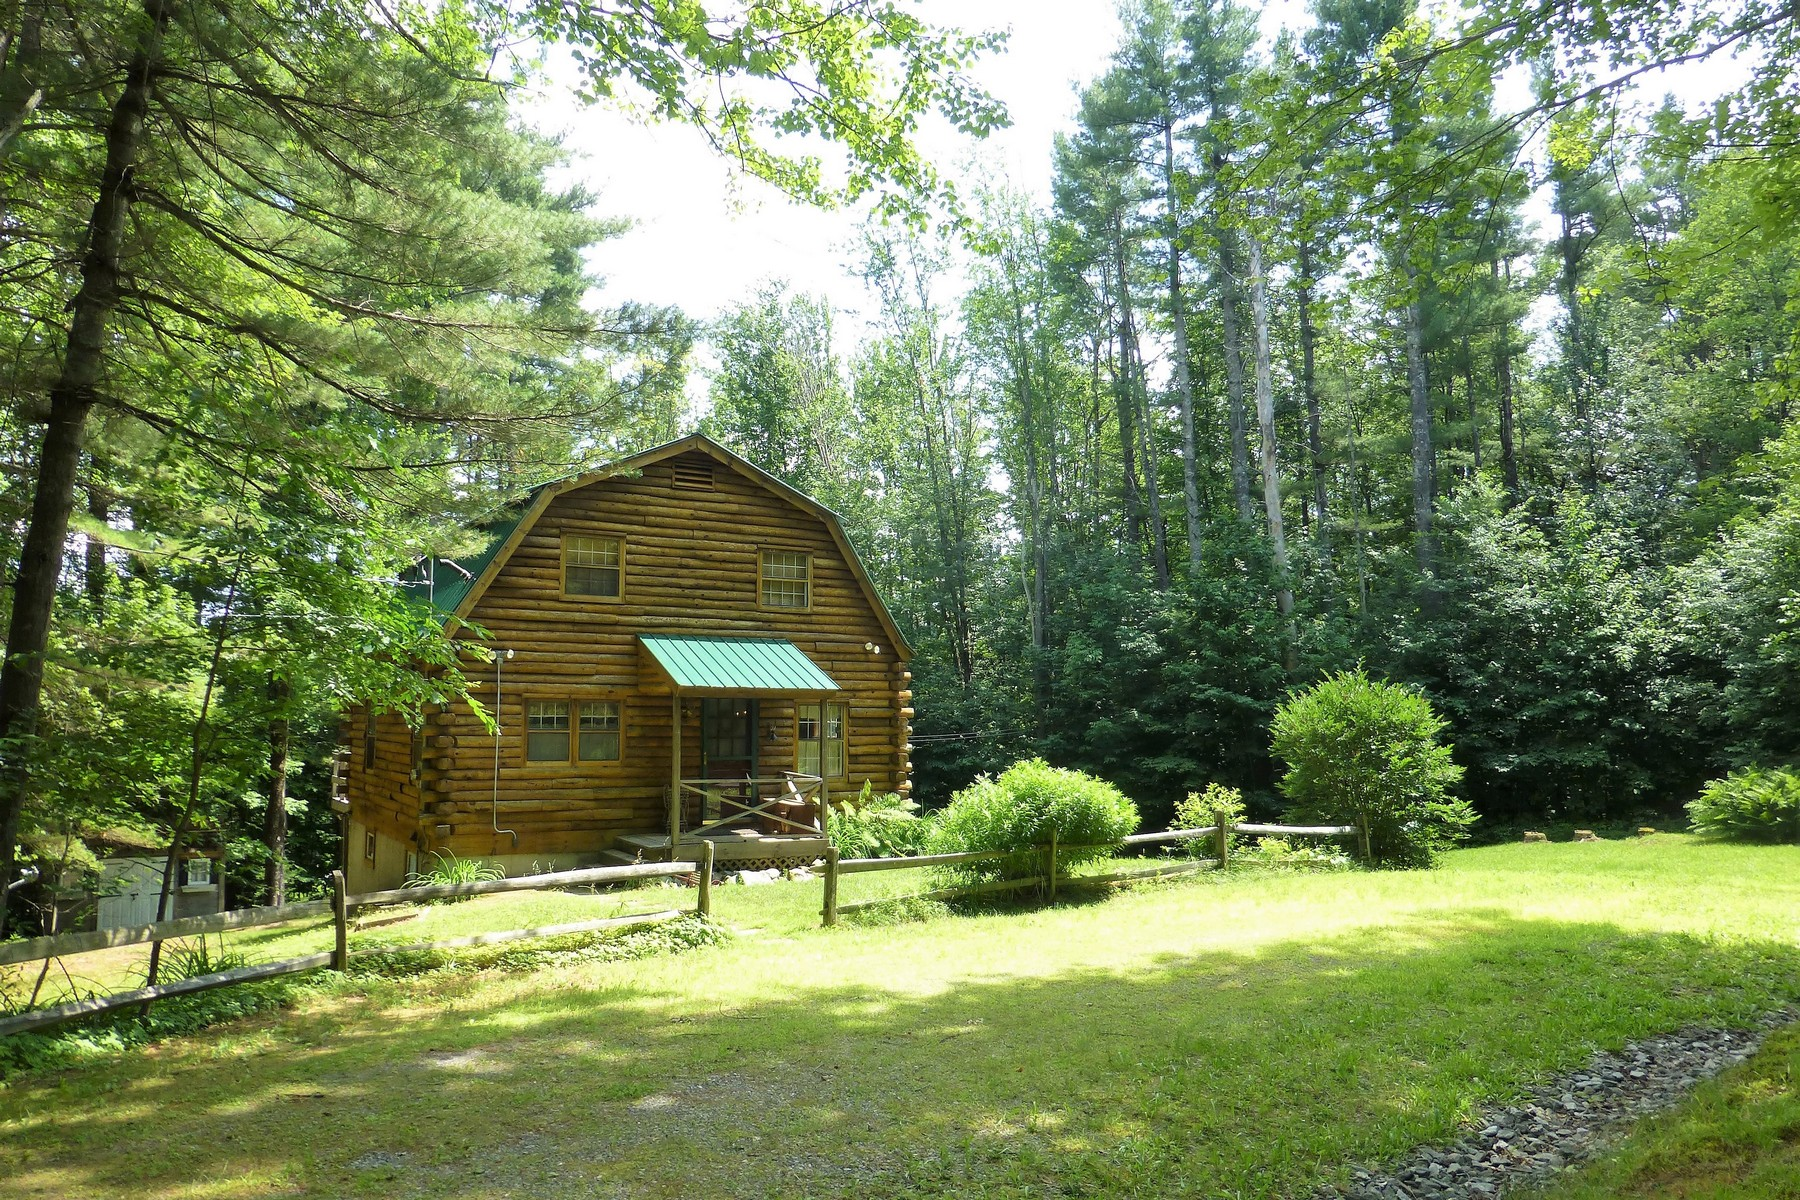 single family homes for Sale at Adorable Log Home in Snow Mountain Farms 18 Shady Ln Wardsboro, Vermont 05355 United States